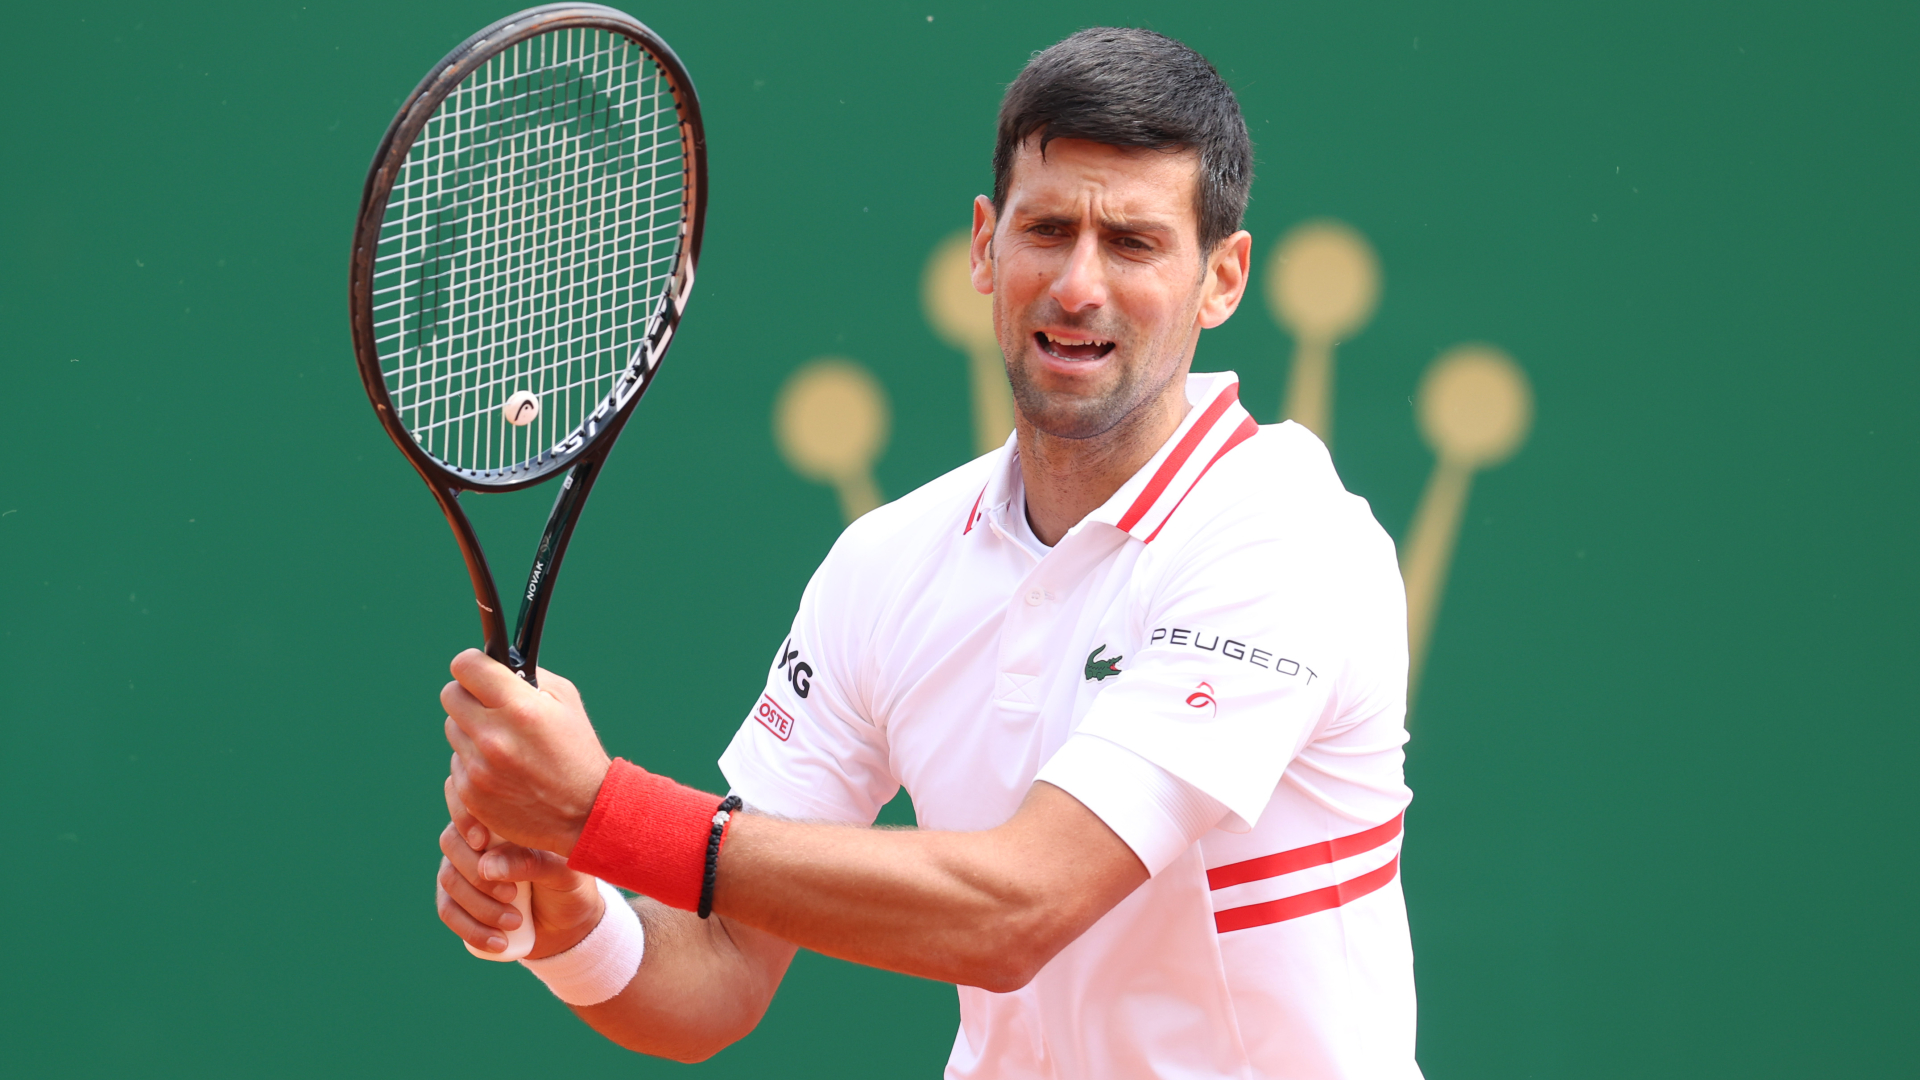 Djokovic left feeling 'dismantled' as Nadal breezes past off-colour Dimitrov